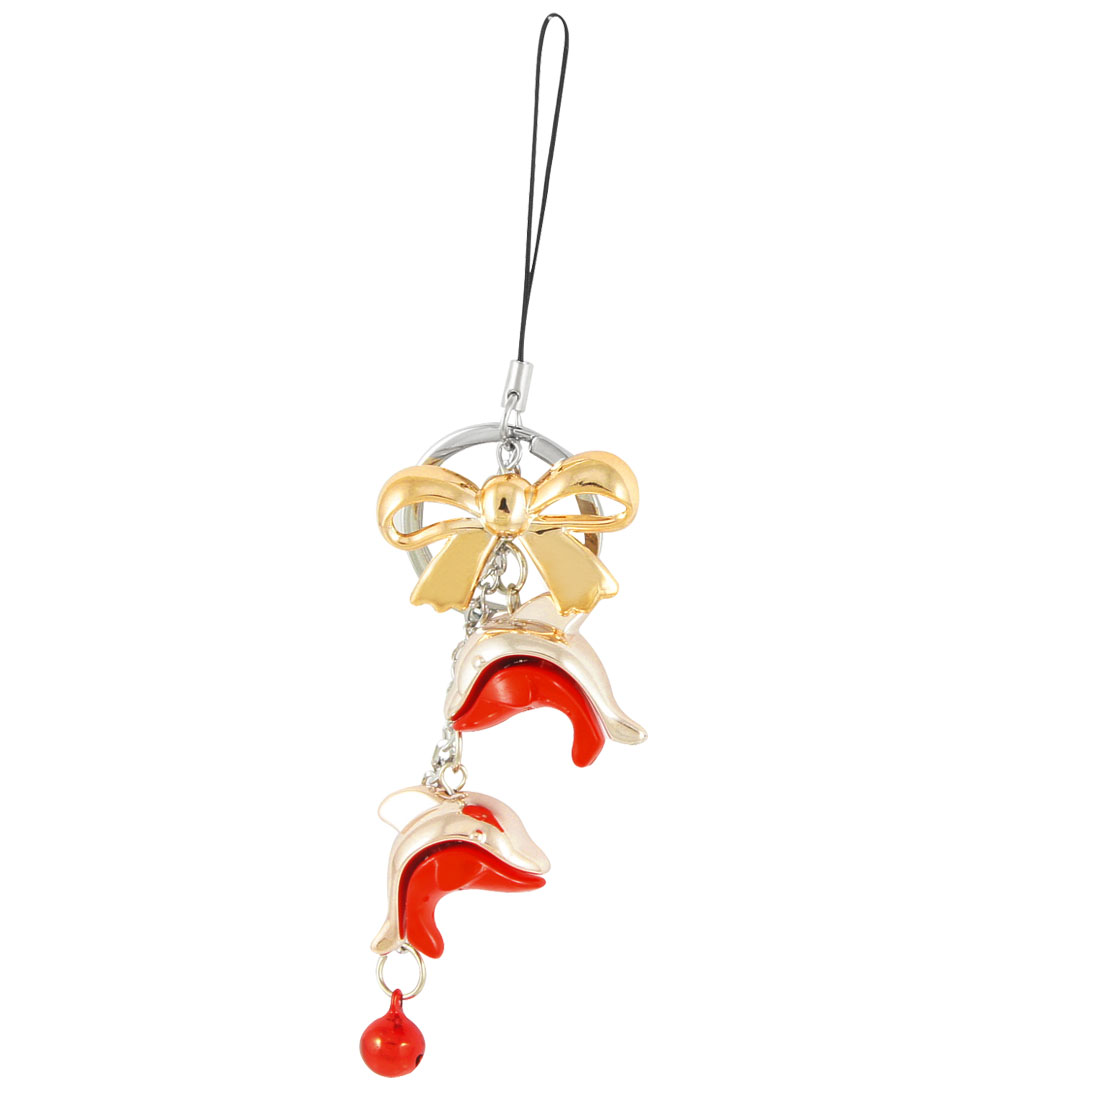 Silver Tone Red Fish Shape Cell Phone Pendant Hook Strap